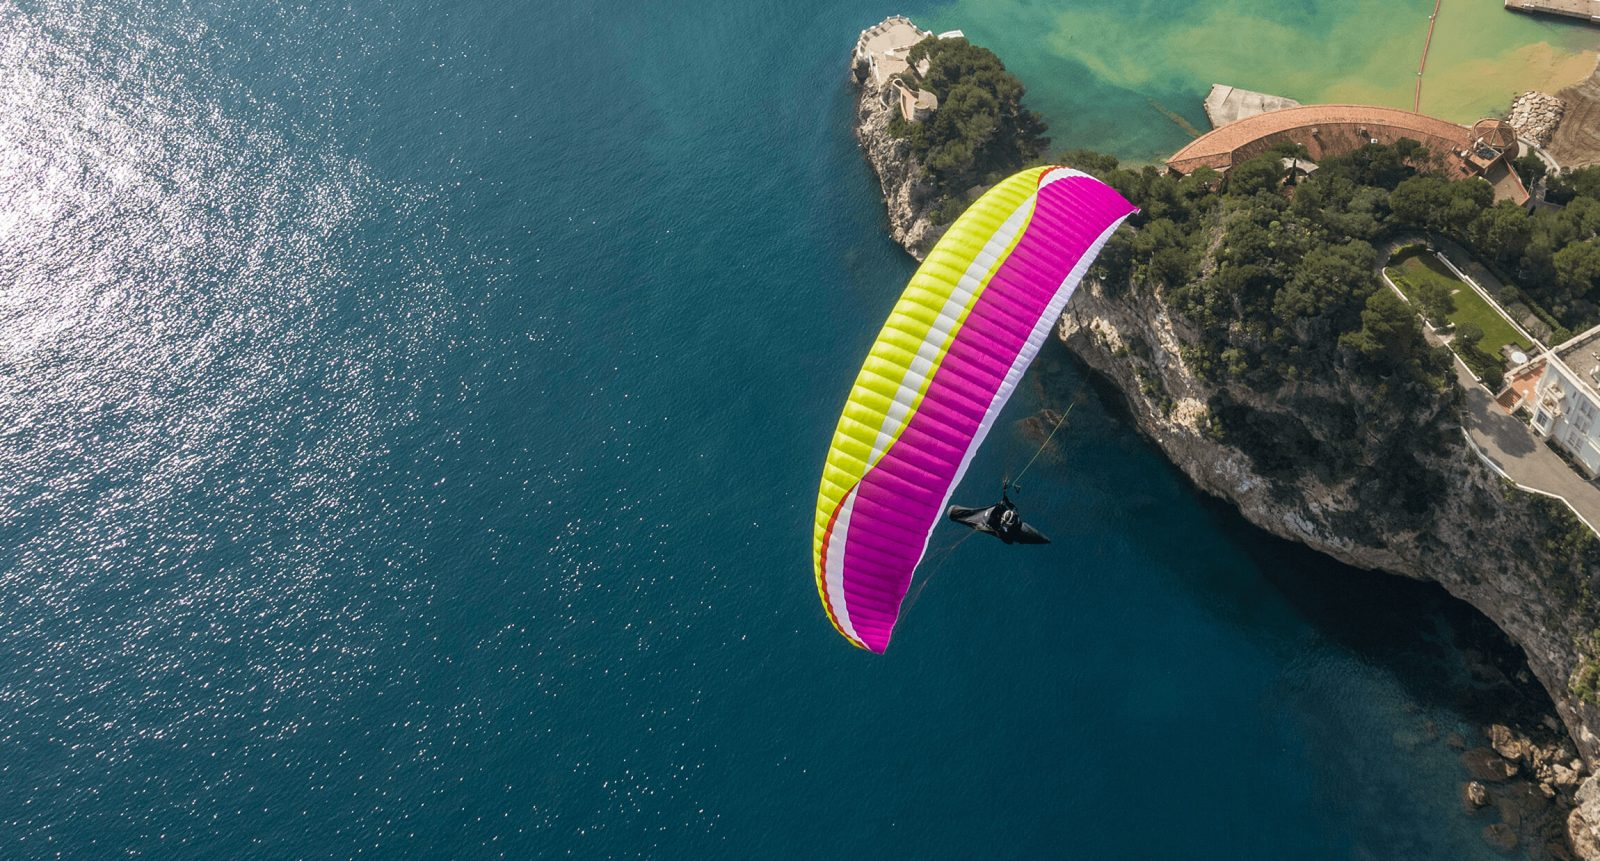 Rise paragliding Air design